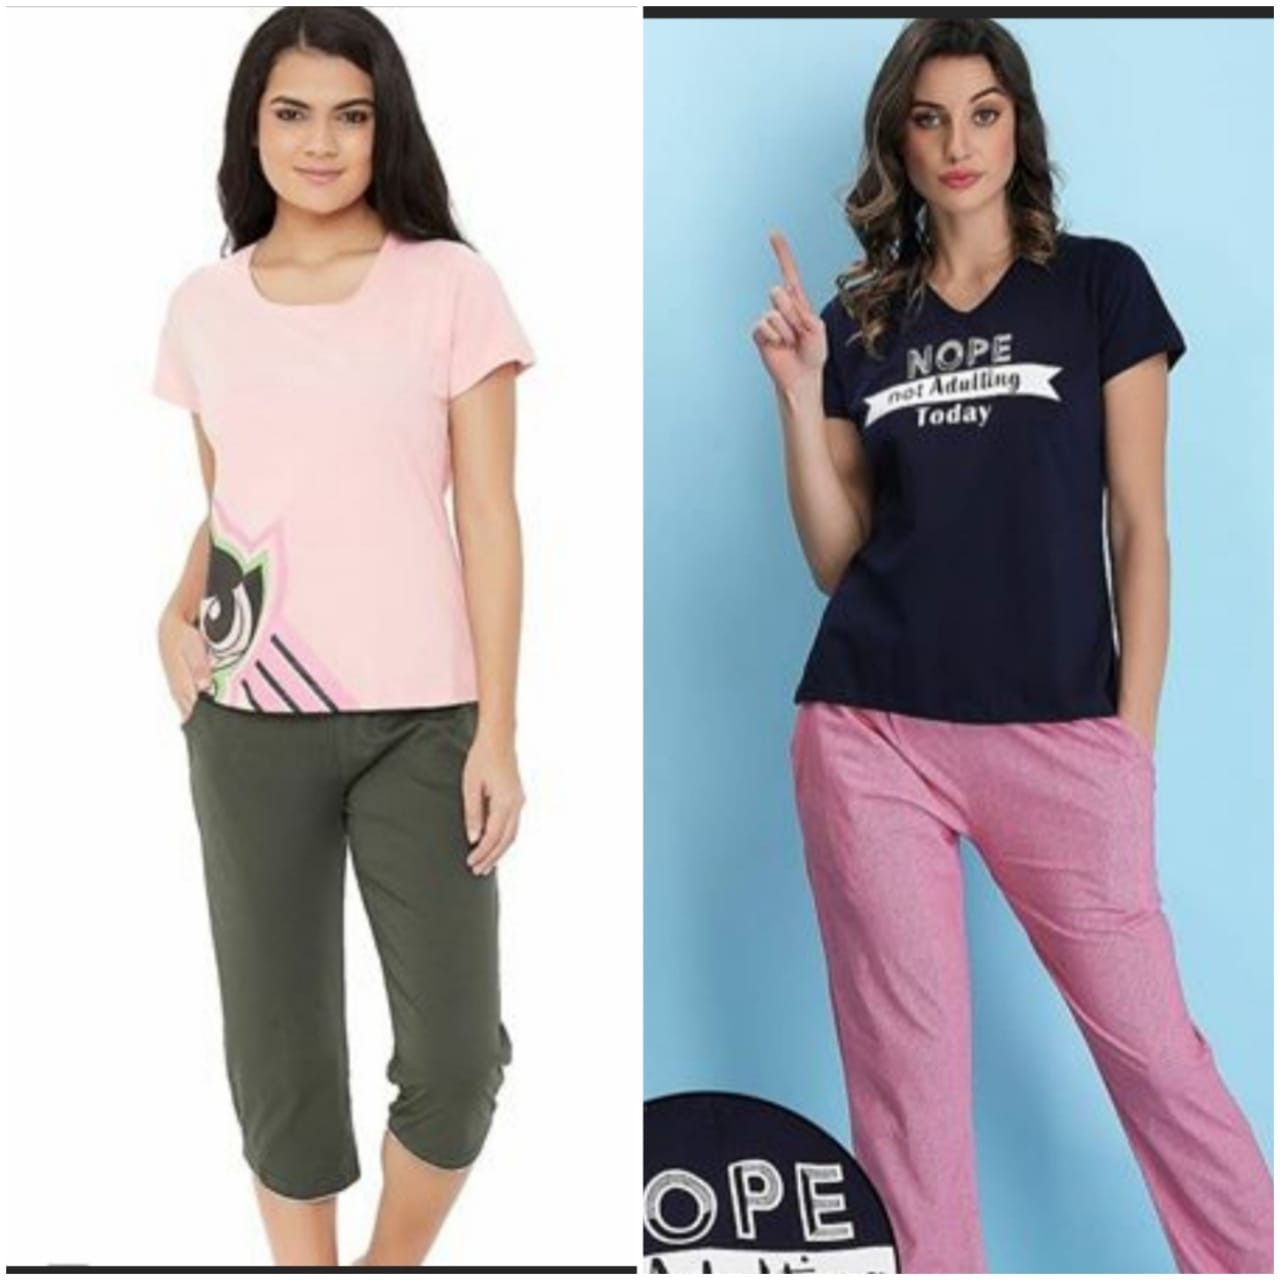 HSF Night Wear for 399/- - hsf48